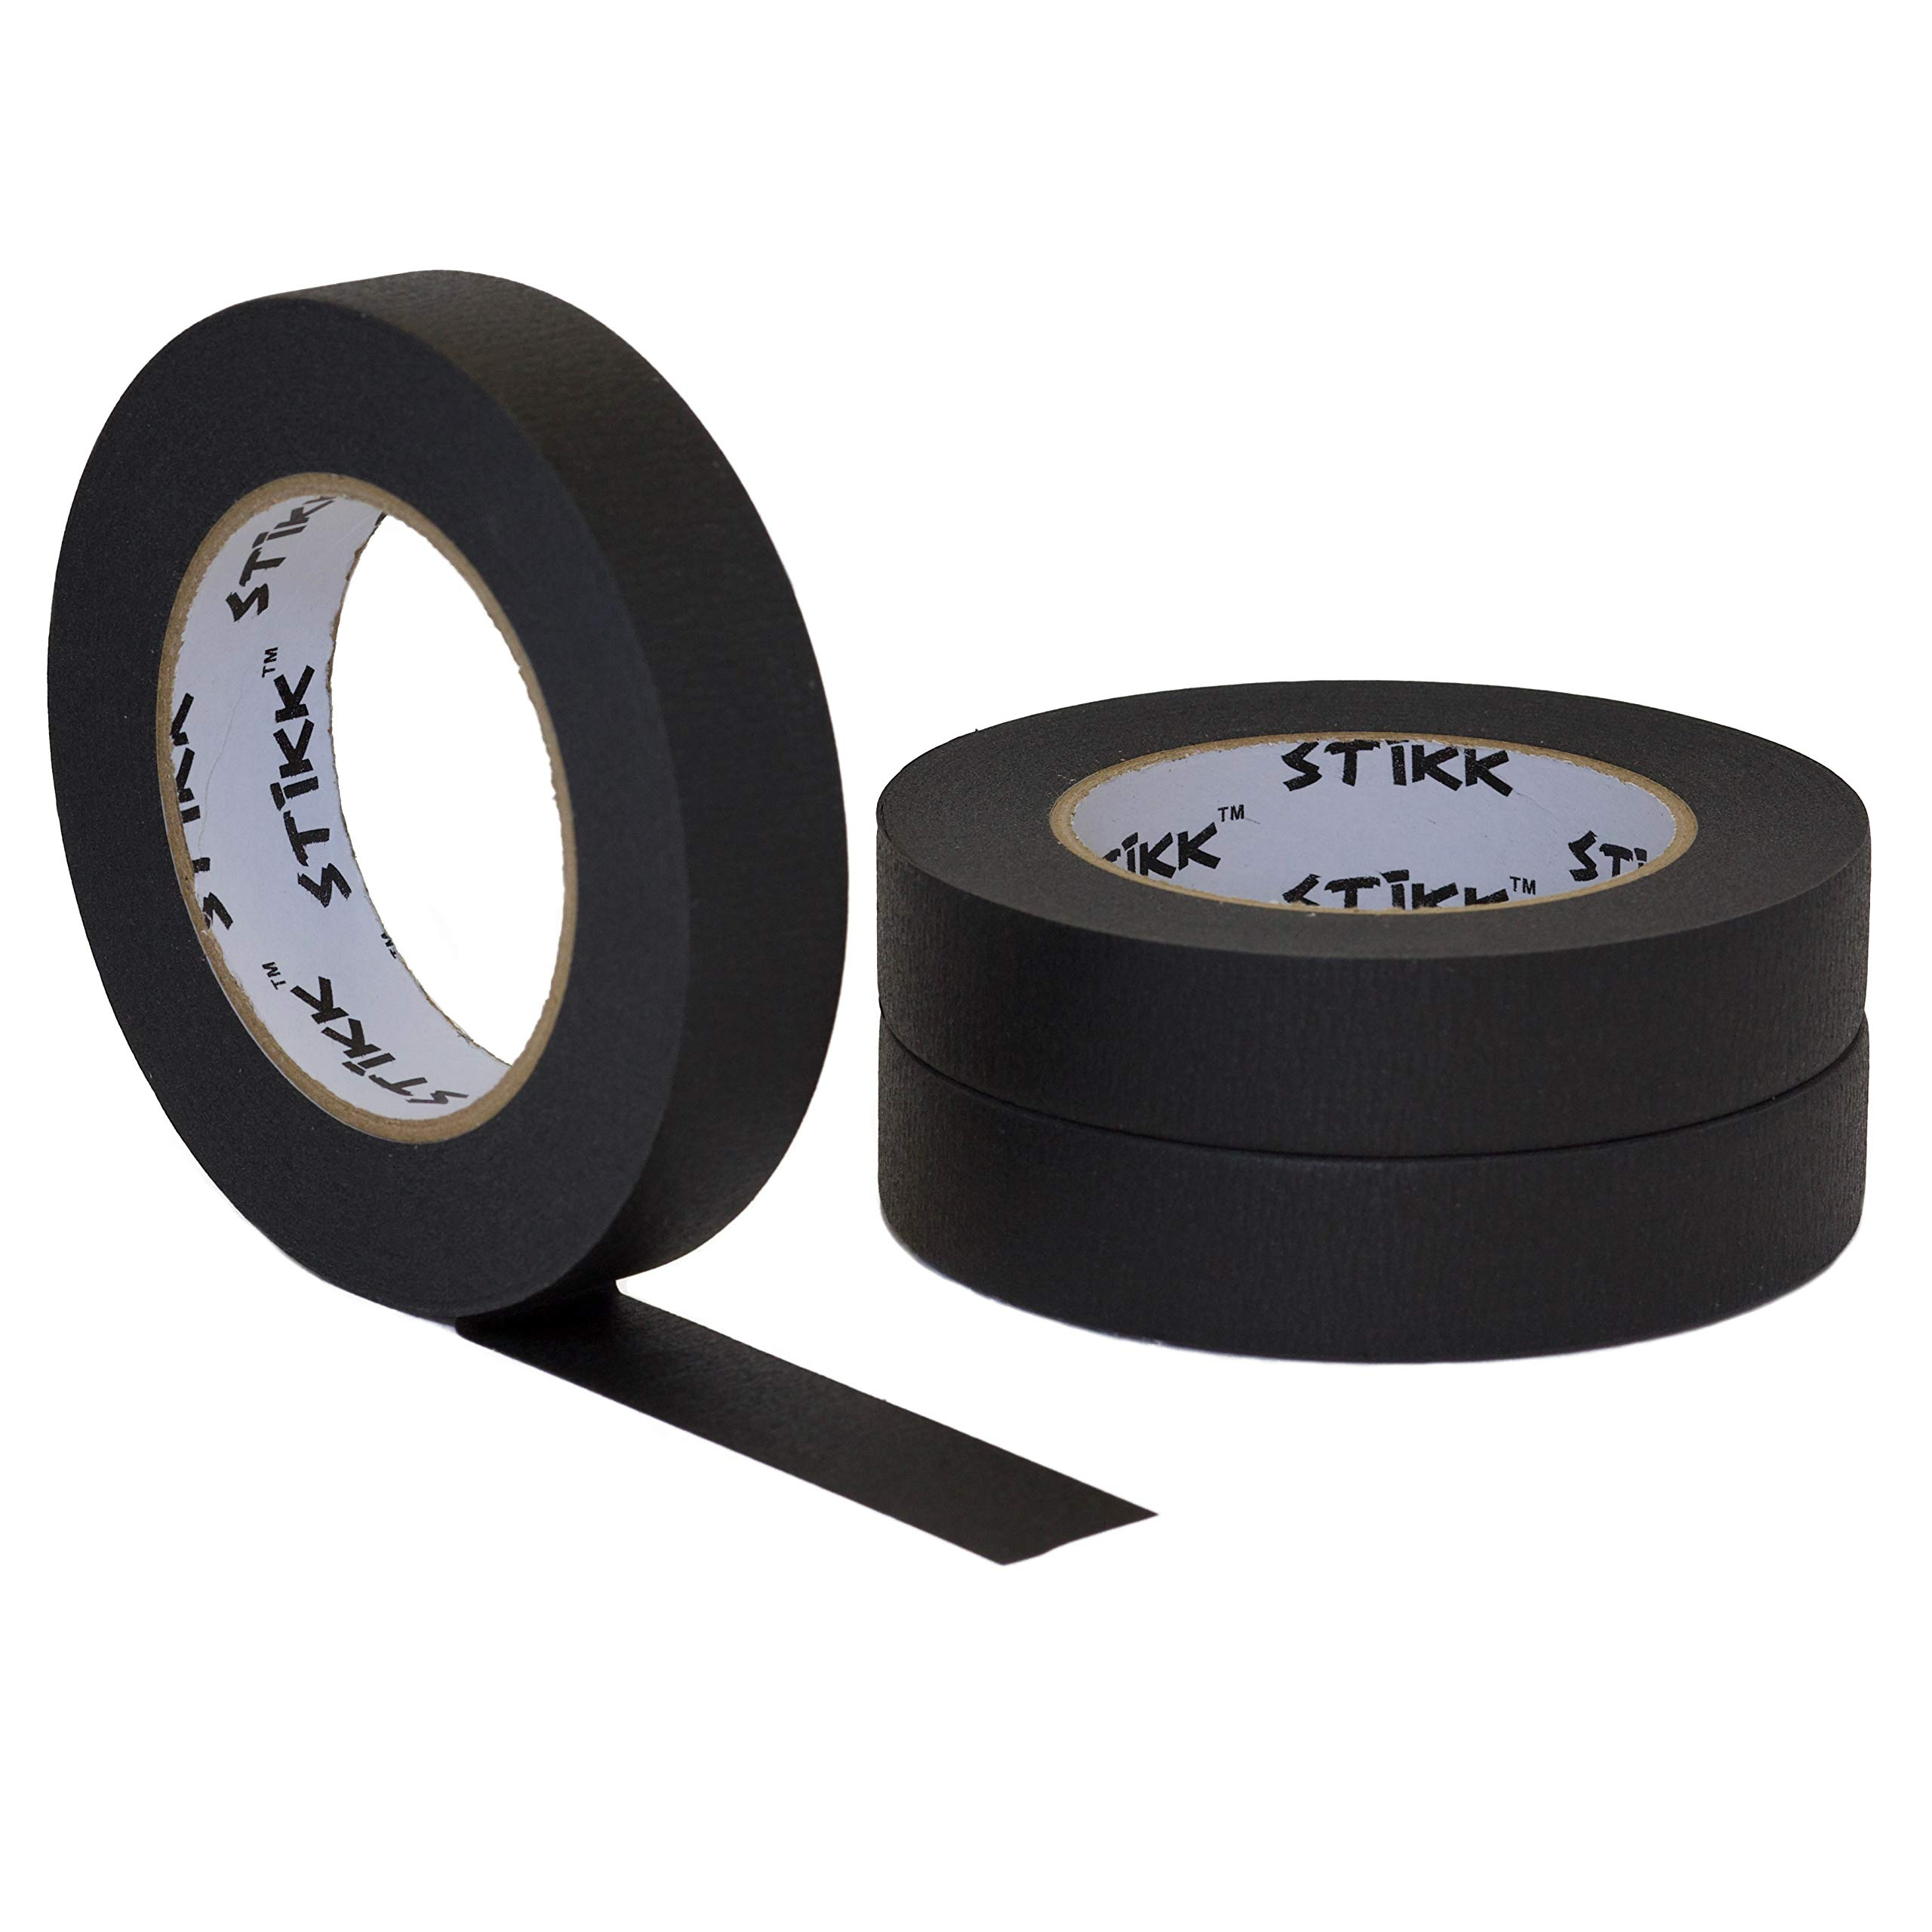 3 pk 1'' inch x 60yd STIKK Black Painters Tape 14 Day Clean Release Trim Edge Finishing Decorative Marking Masking Tape (.94 in 24MM)